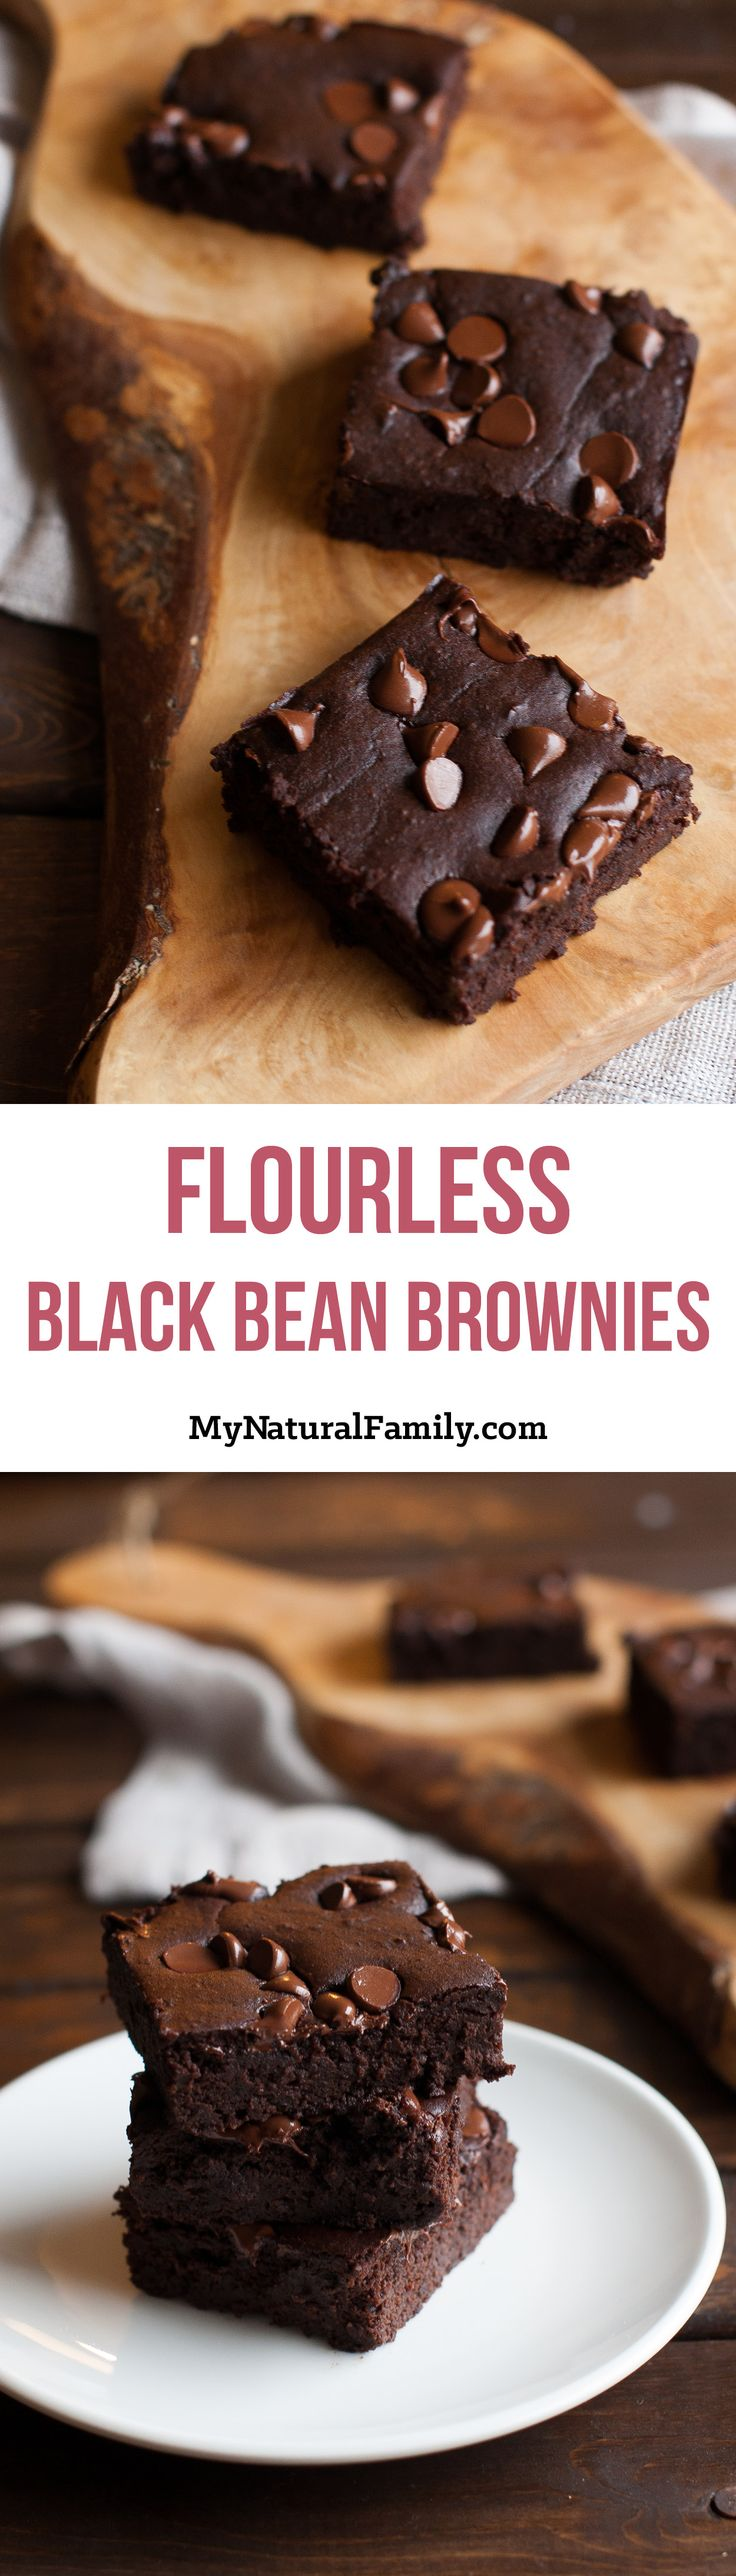 Flourless Black Bean Brownies Recipe - with only 9 simple ingredients, these pull together really fast and are grain-free and gluten-free brownies.